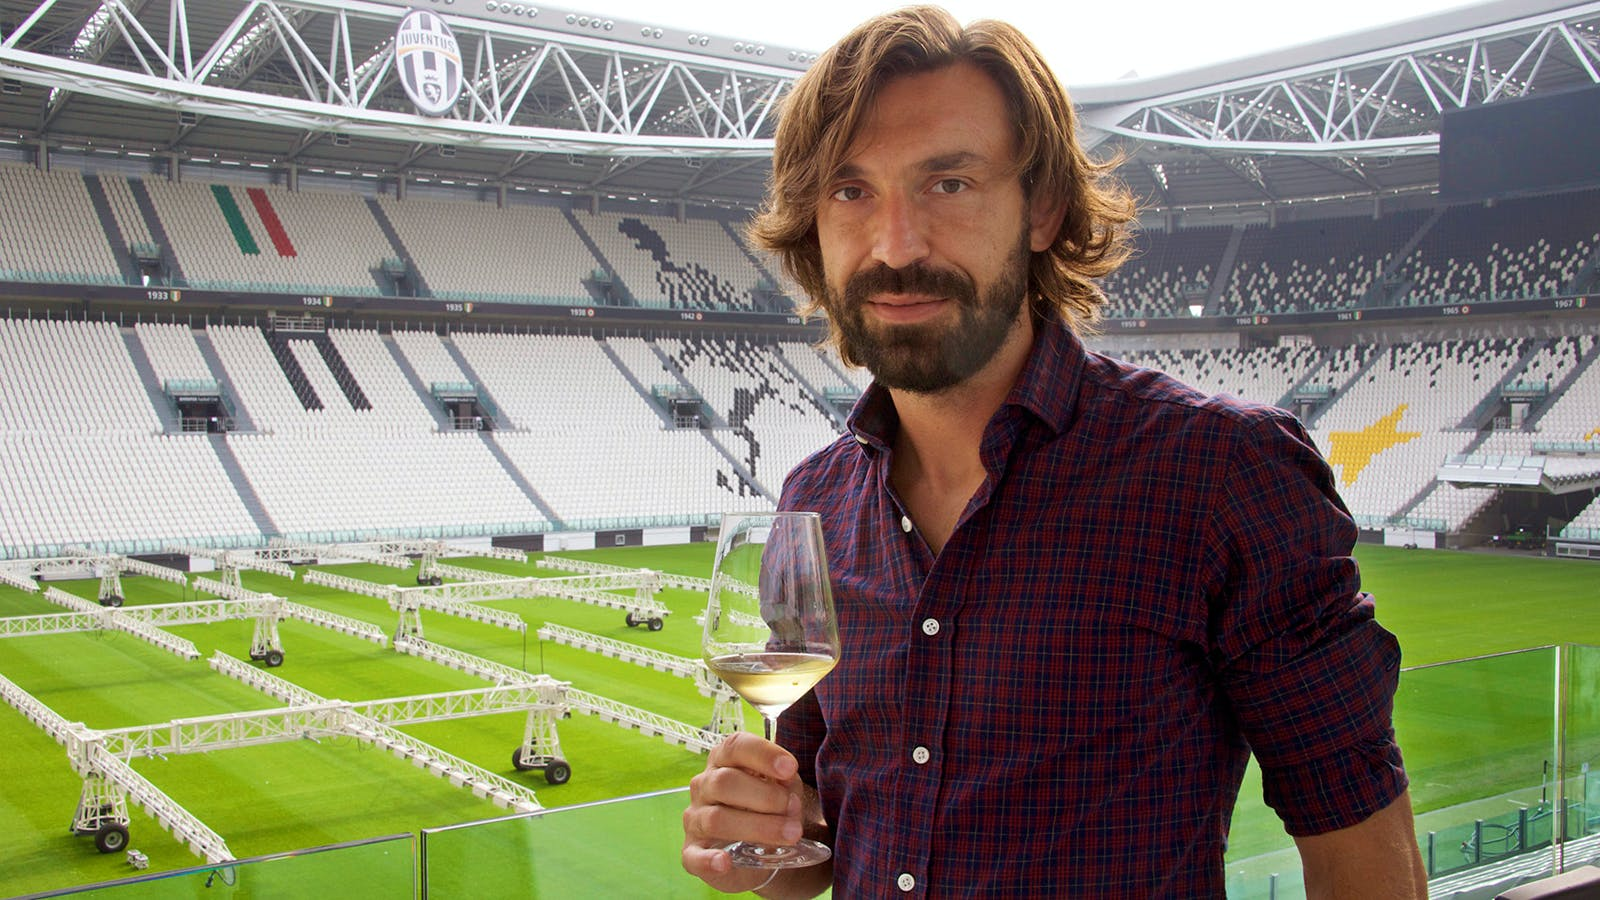 Winemaking Soccer Star Andrea Pirlo Is Coming to America